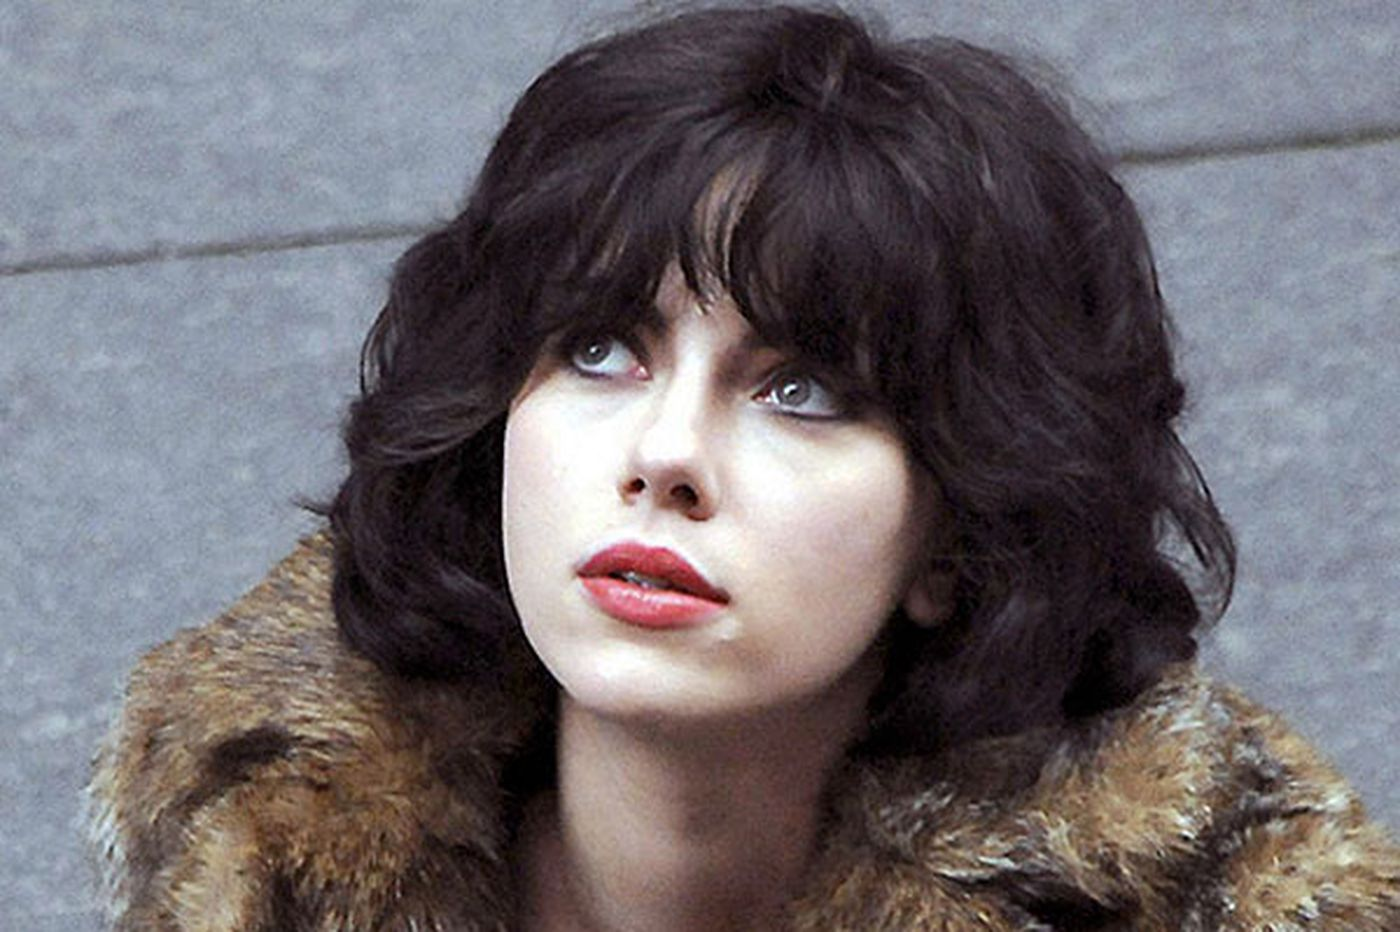 'Under the Skin': Mysterious femme fatale roaming Scotland